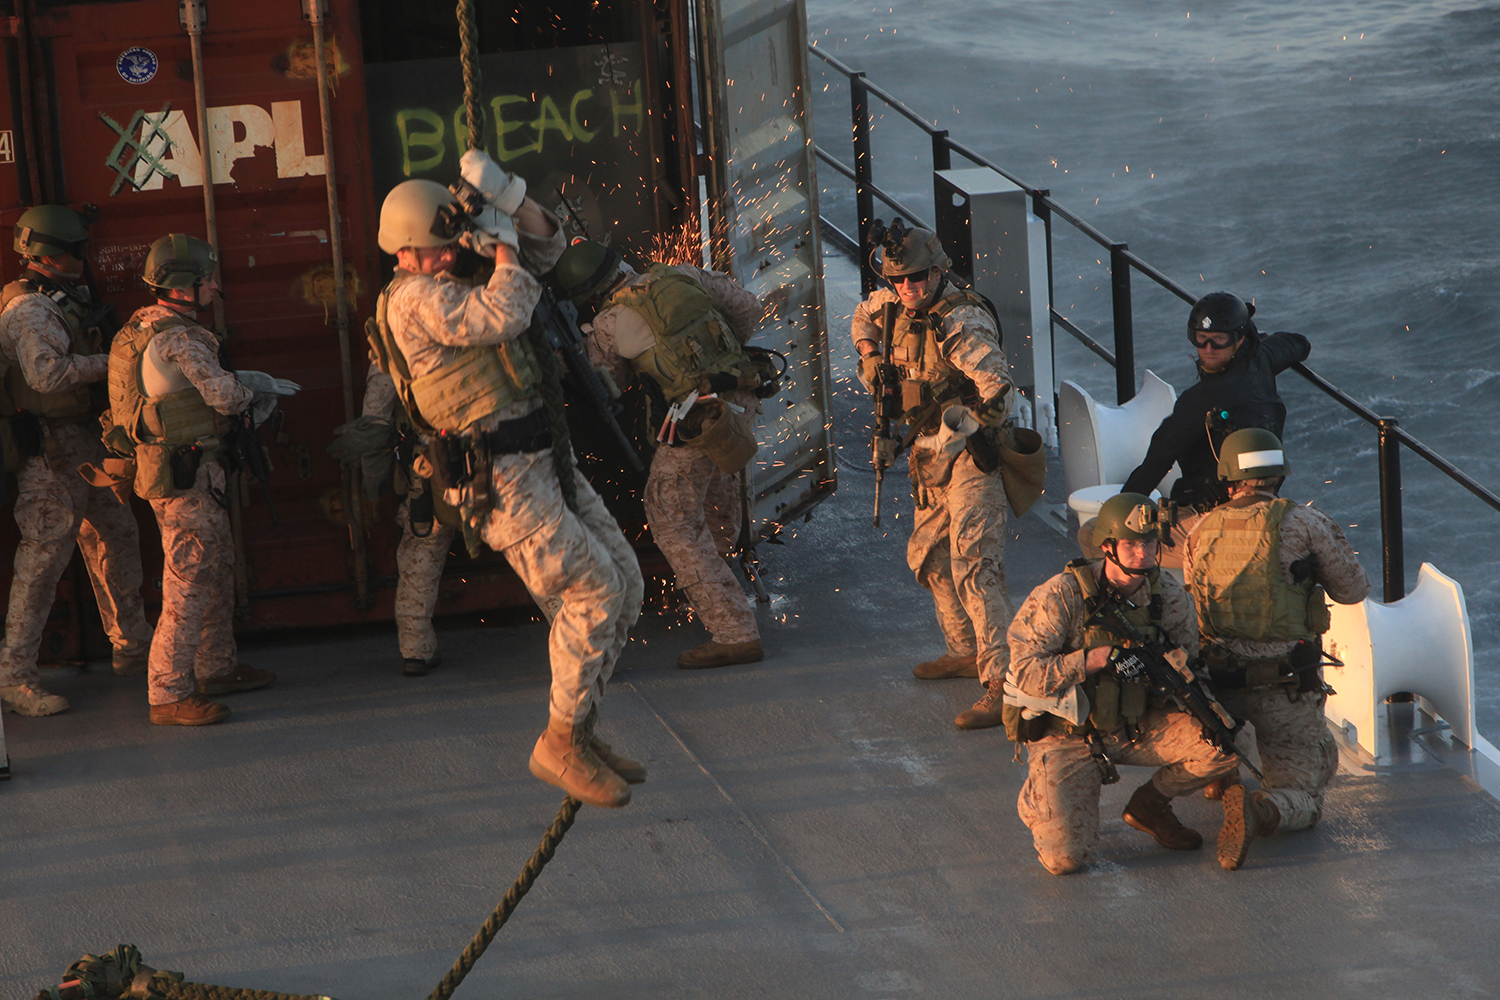 Marines with the 1st Marine Special Operations Battalion, U.S. Marine Corps Forces, Special Operations Command breach a cargo container as others rappel from a CH-47 helicopter onto the deck of a mock cargo ship during Visit, Board, Search and Seizure (VBSS) training with the 160th Special Operations Aviation Regiment near Camp Pendleton, Calif. Dec. 11. VBSS, which consists of maritime vessel boarding and searching, is used to combat smuggling, drug trafficking, terrorism and piracy. (U.S. Marine Corps photo by Cpl. Kyle McNally/Released)